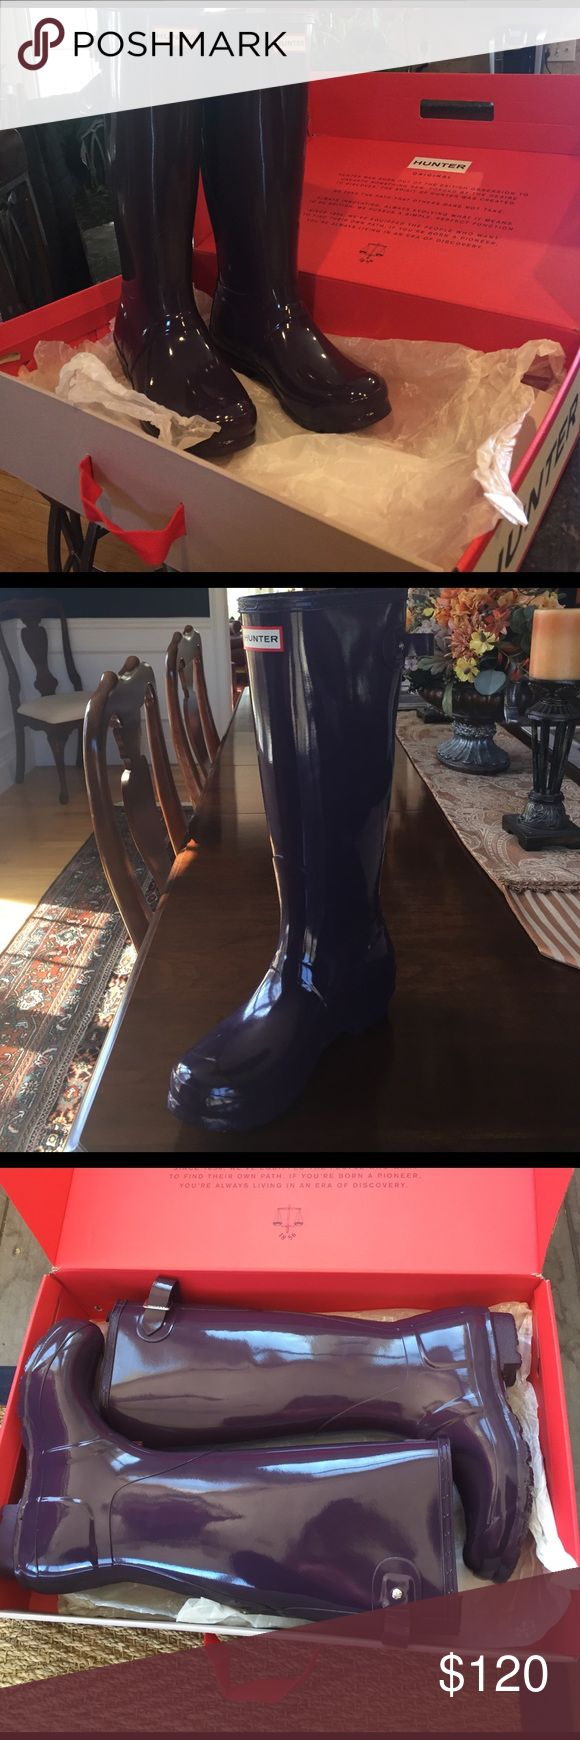 "Brand New Tall women's Hunter rain boots!! ""Purple Urchin"" BRAND NEW with box Tall Hunter rain boots! Hunter Boots Shoes Winter & Rain Boots"